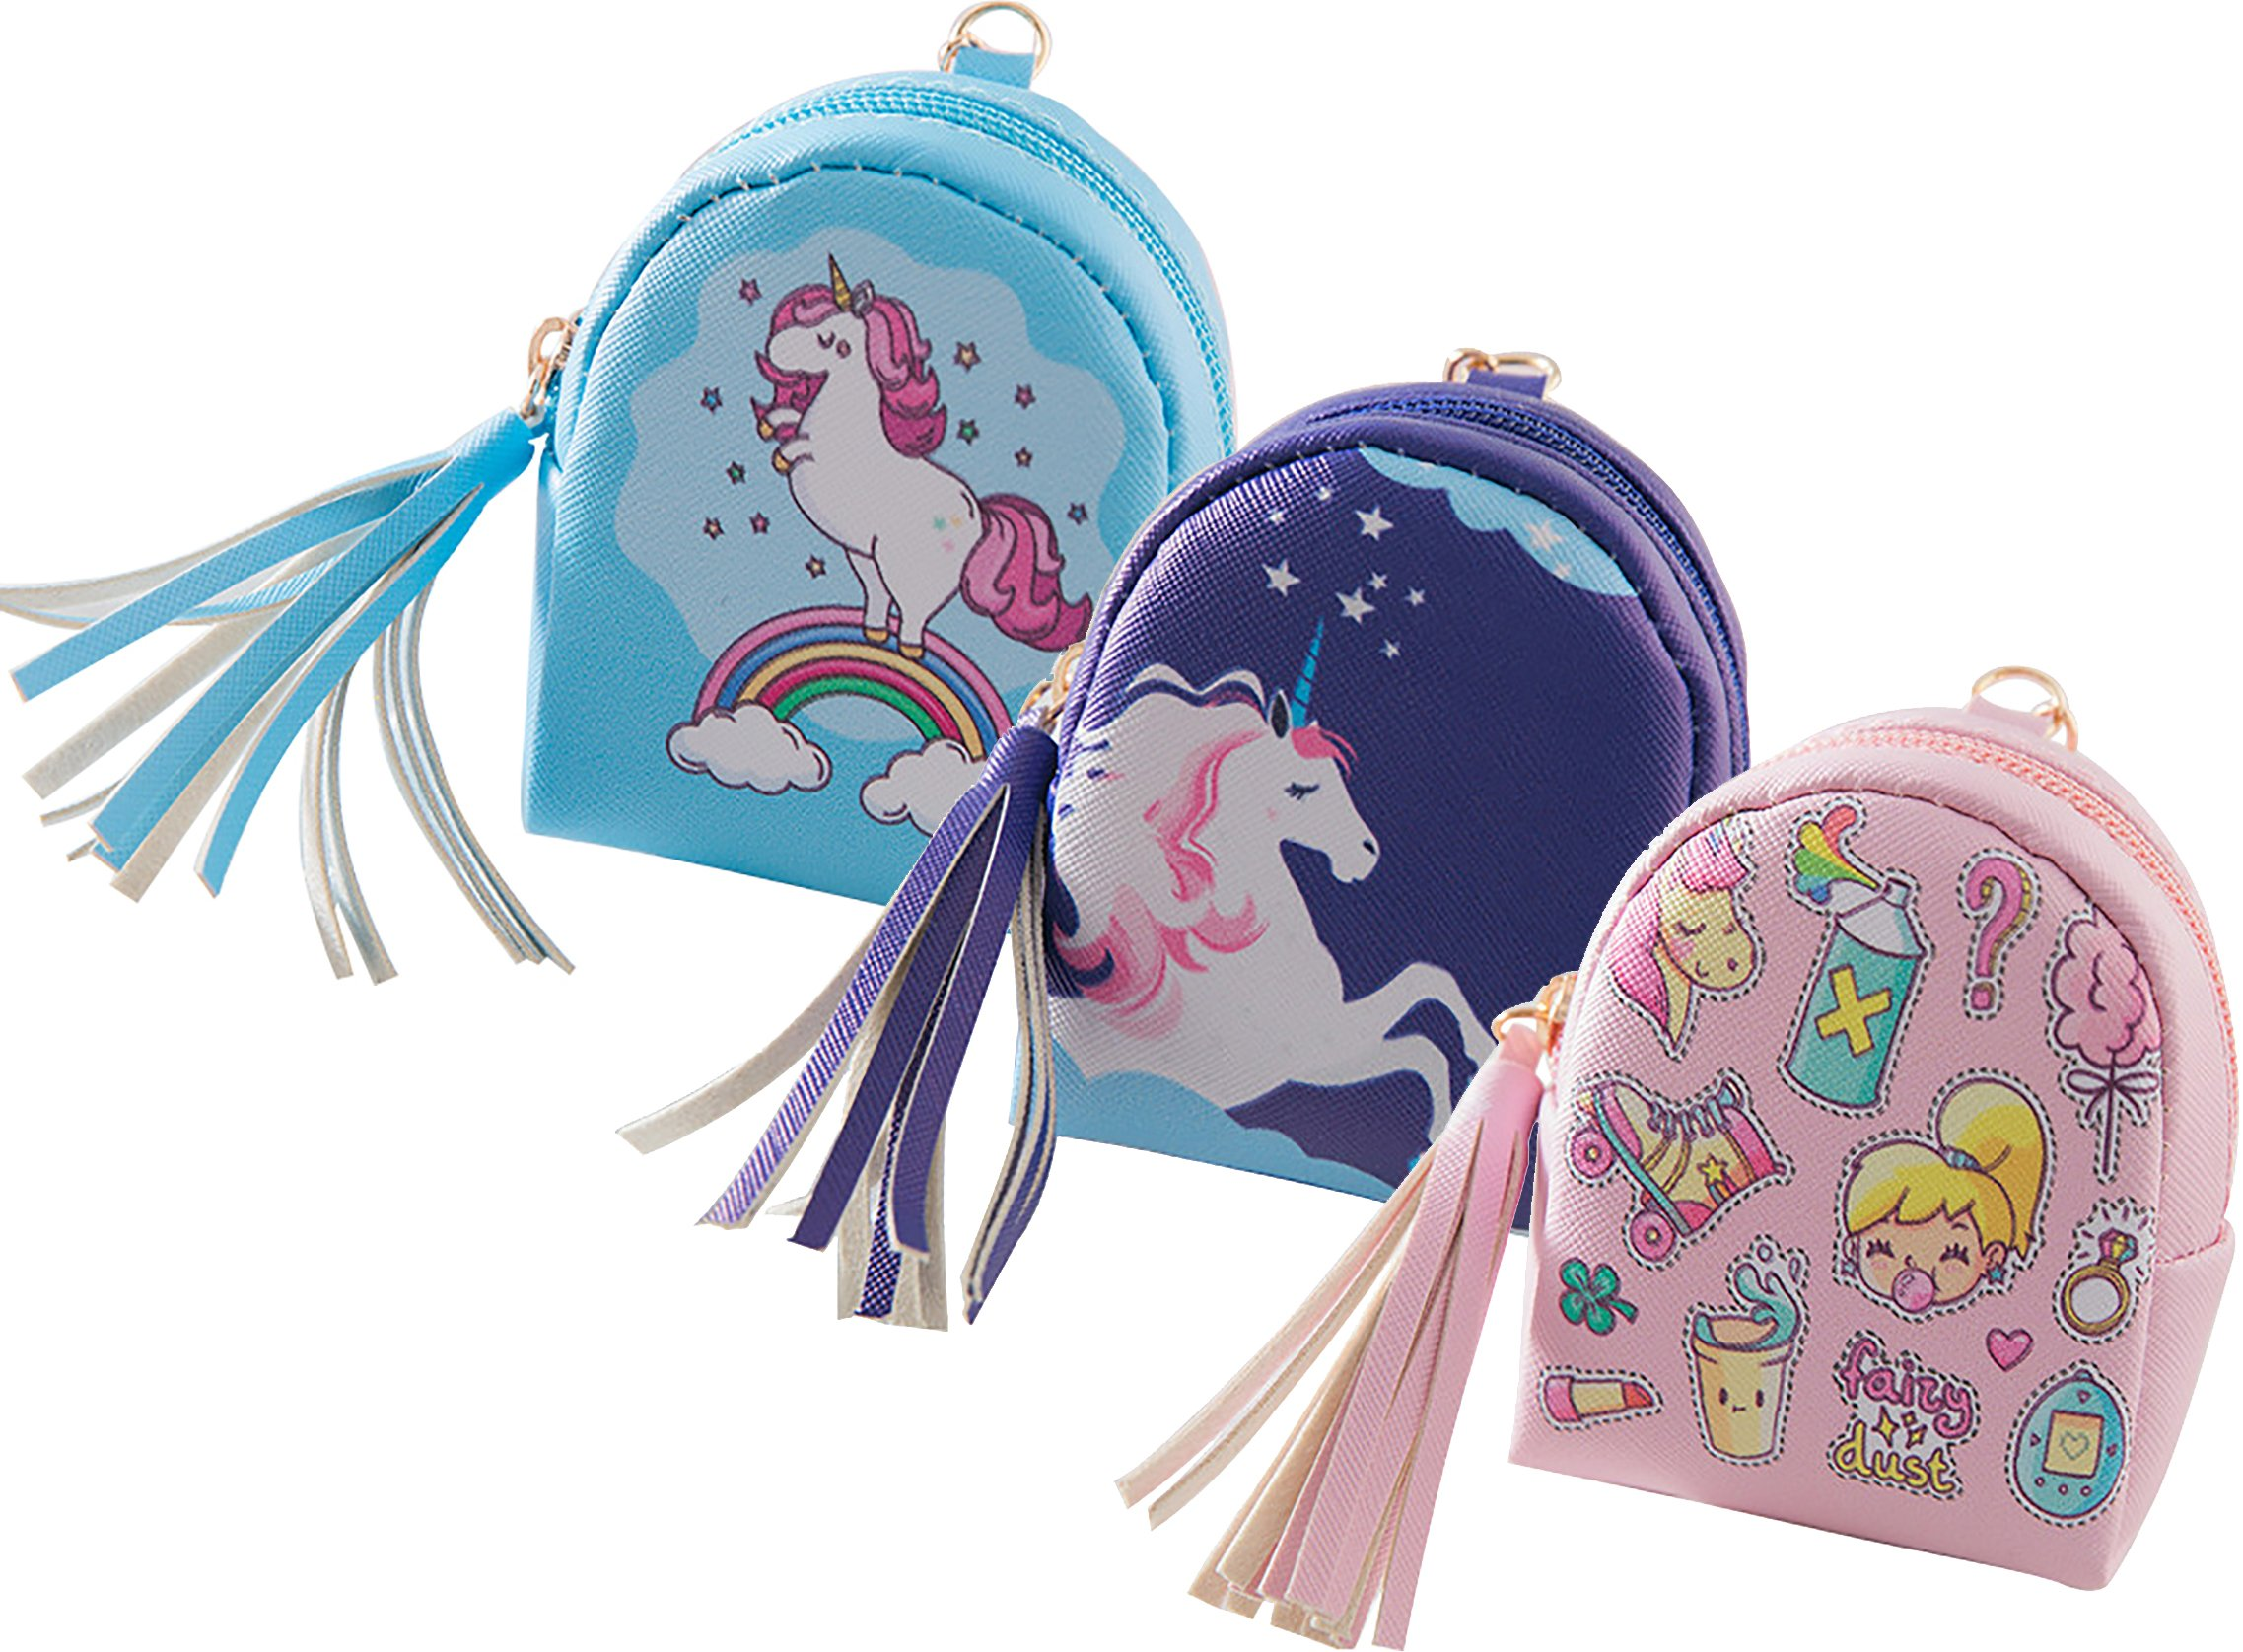 Ababalaya Creative Cartoon Unicorn Pattern Mini Backpack Coin Purse with Key Ring 4×3 inch,Group 5